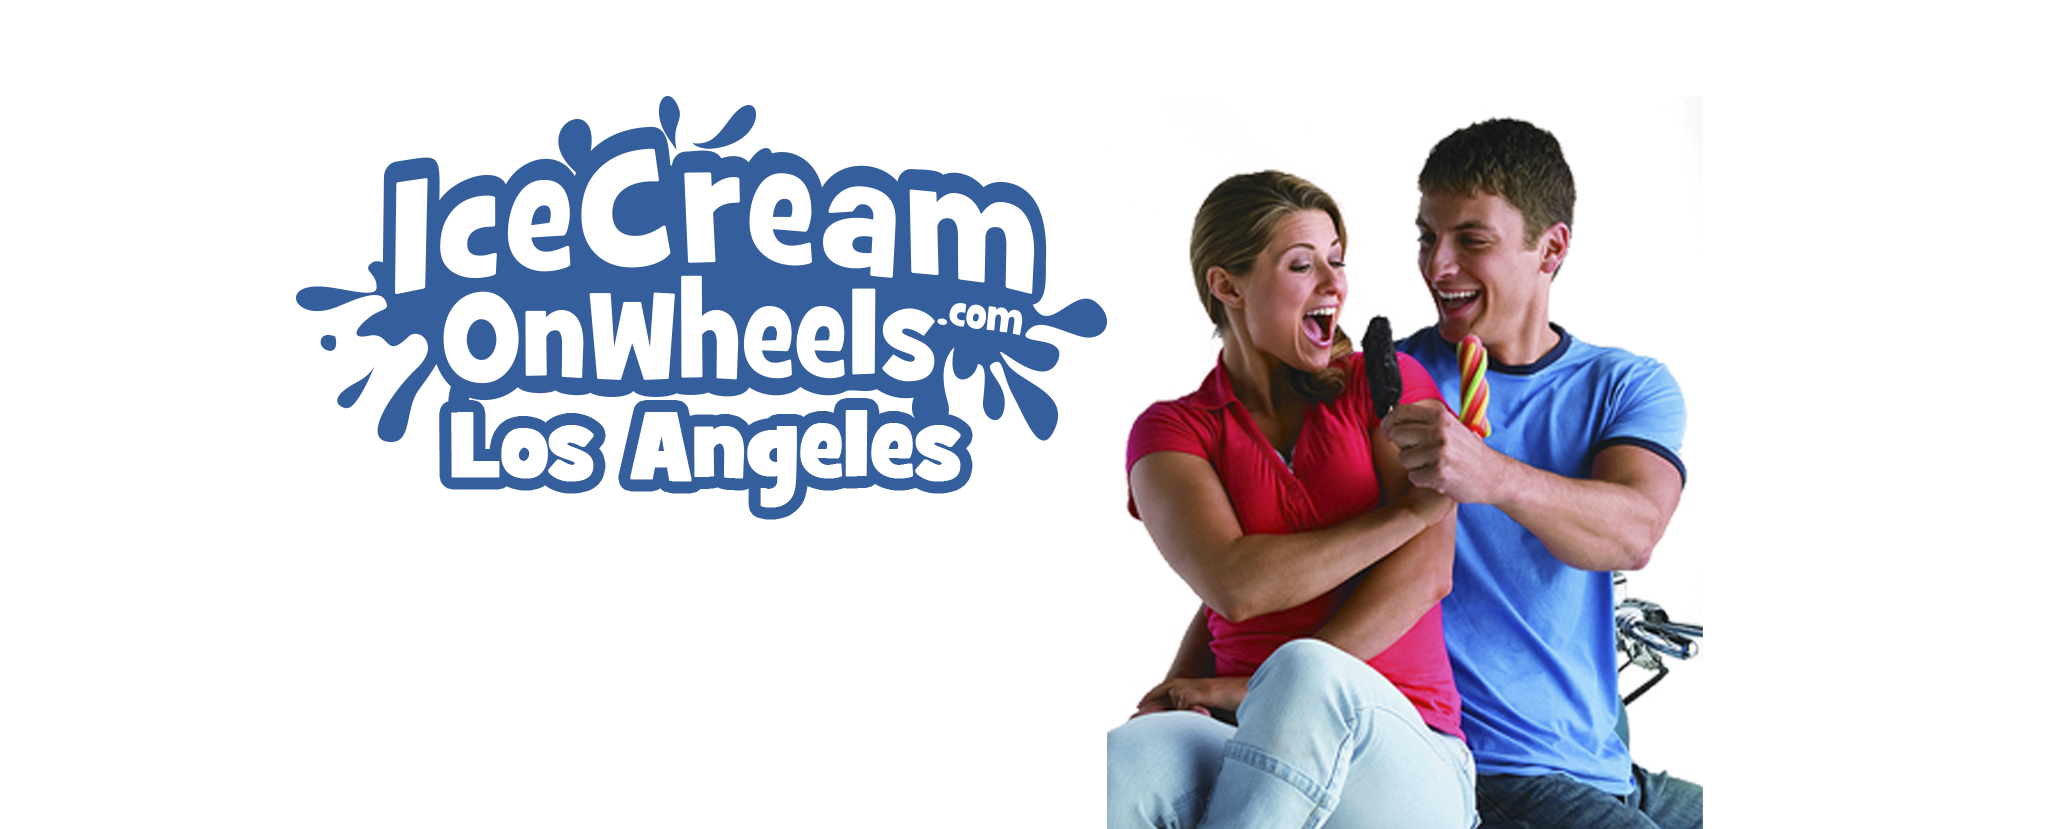 School Events Ice Cream Trucks Ventura County